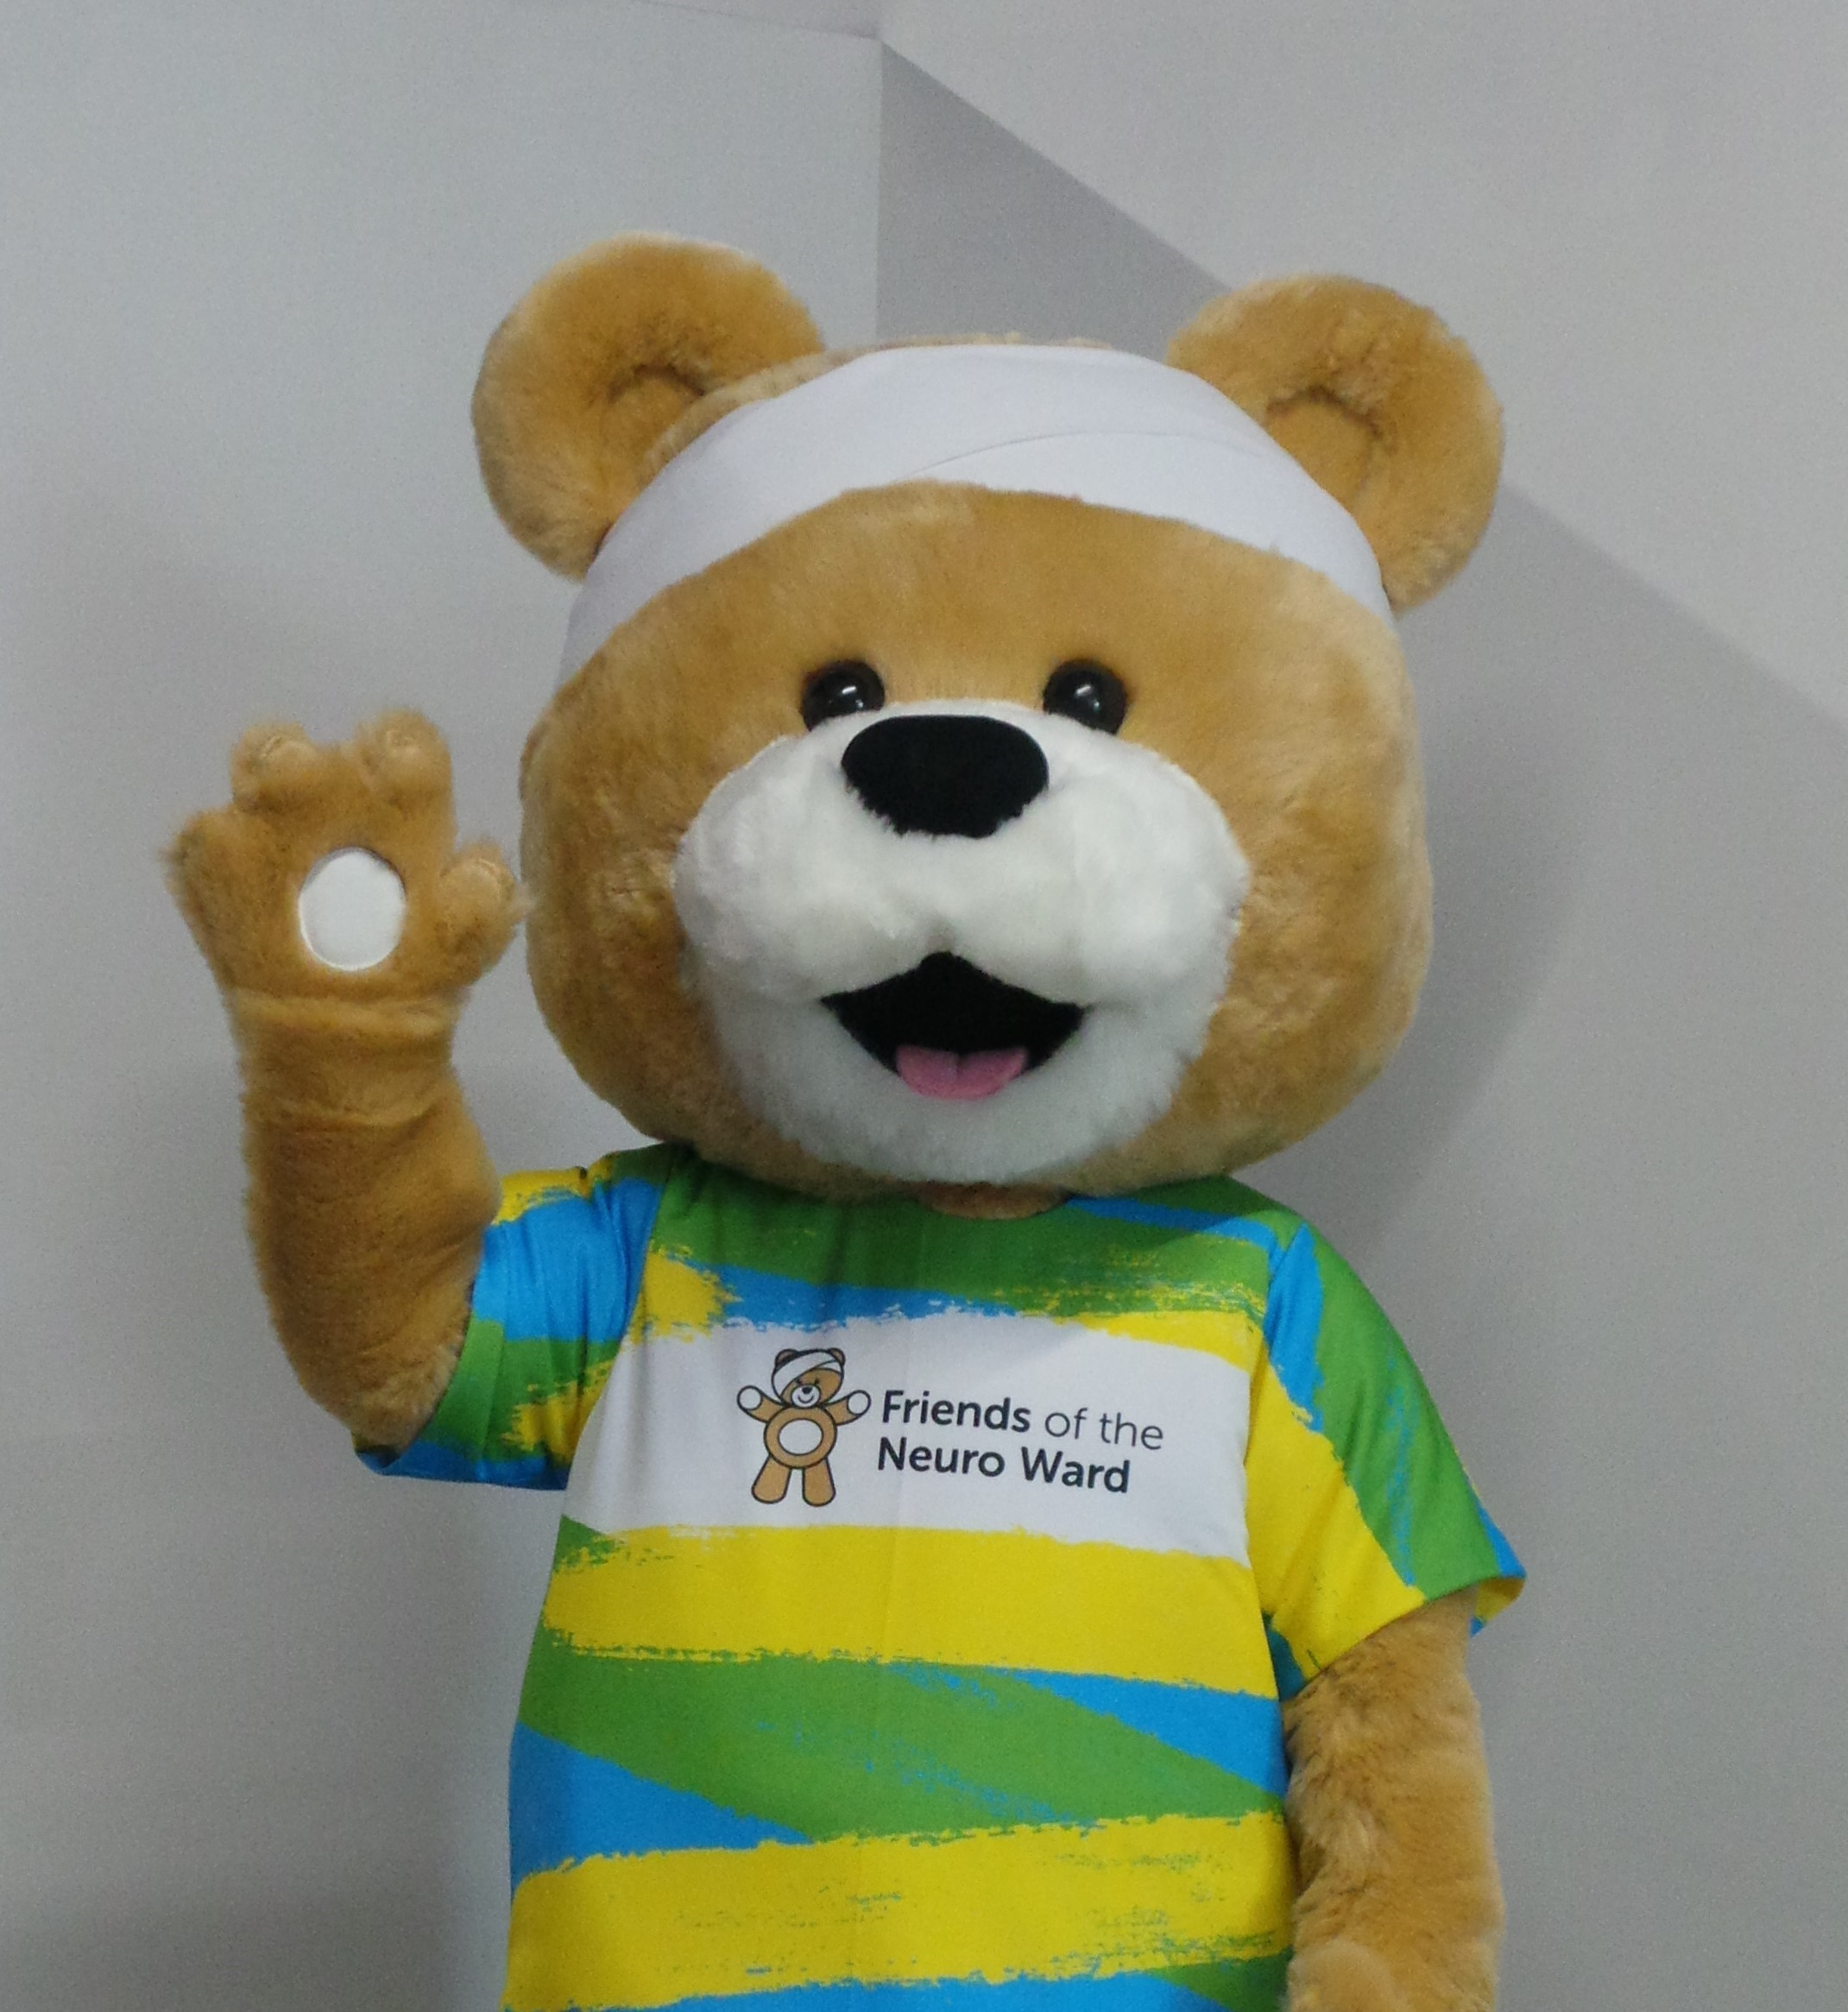 Name our mascot colouring competition